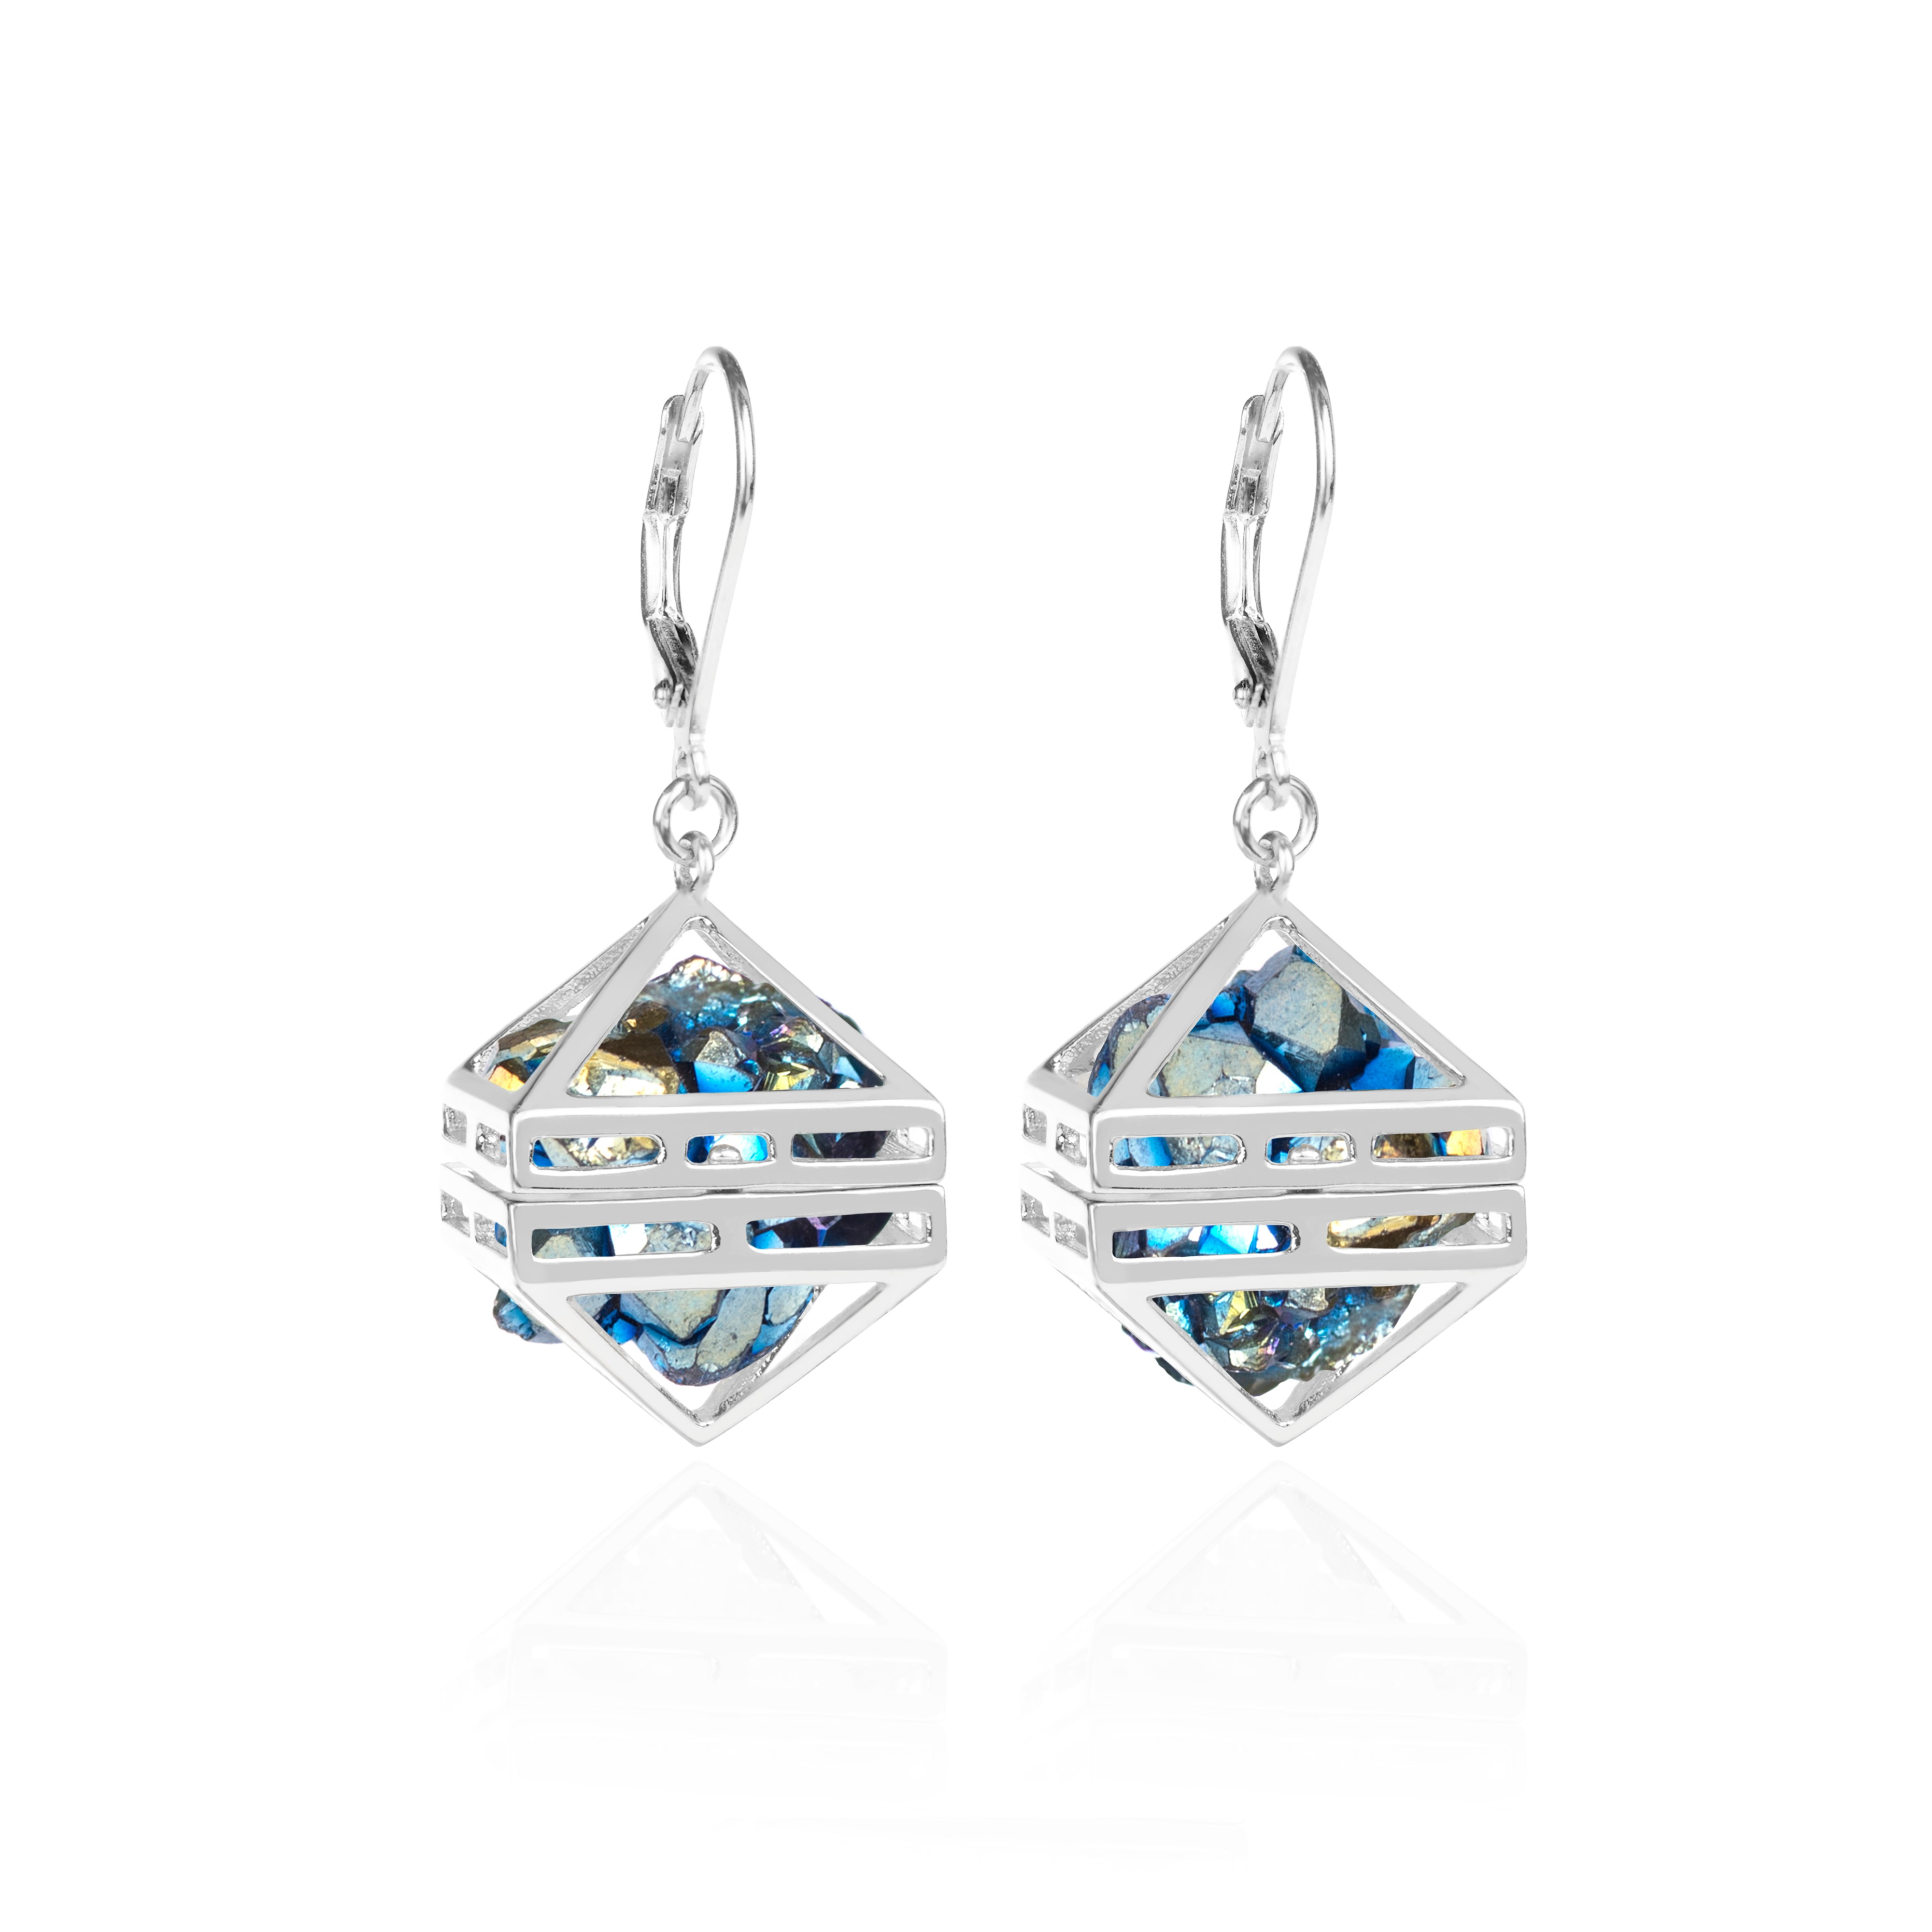 Blue Beauty Within Earrings, Silver by Sally Lane Jewellery on curated-crowd.com